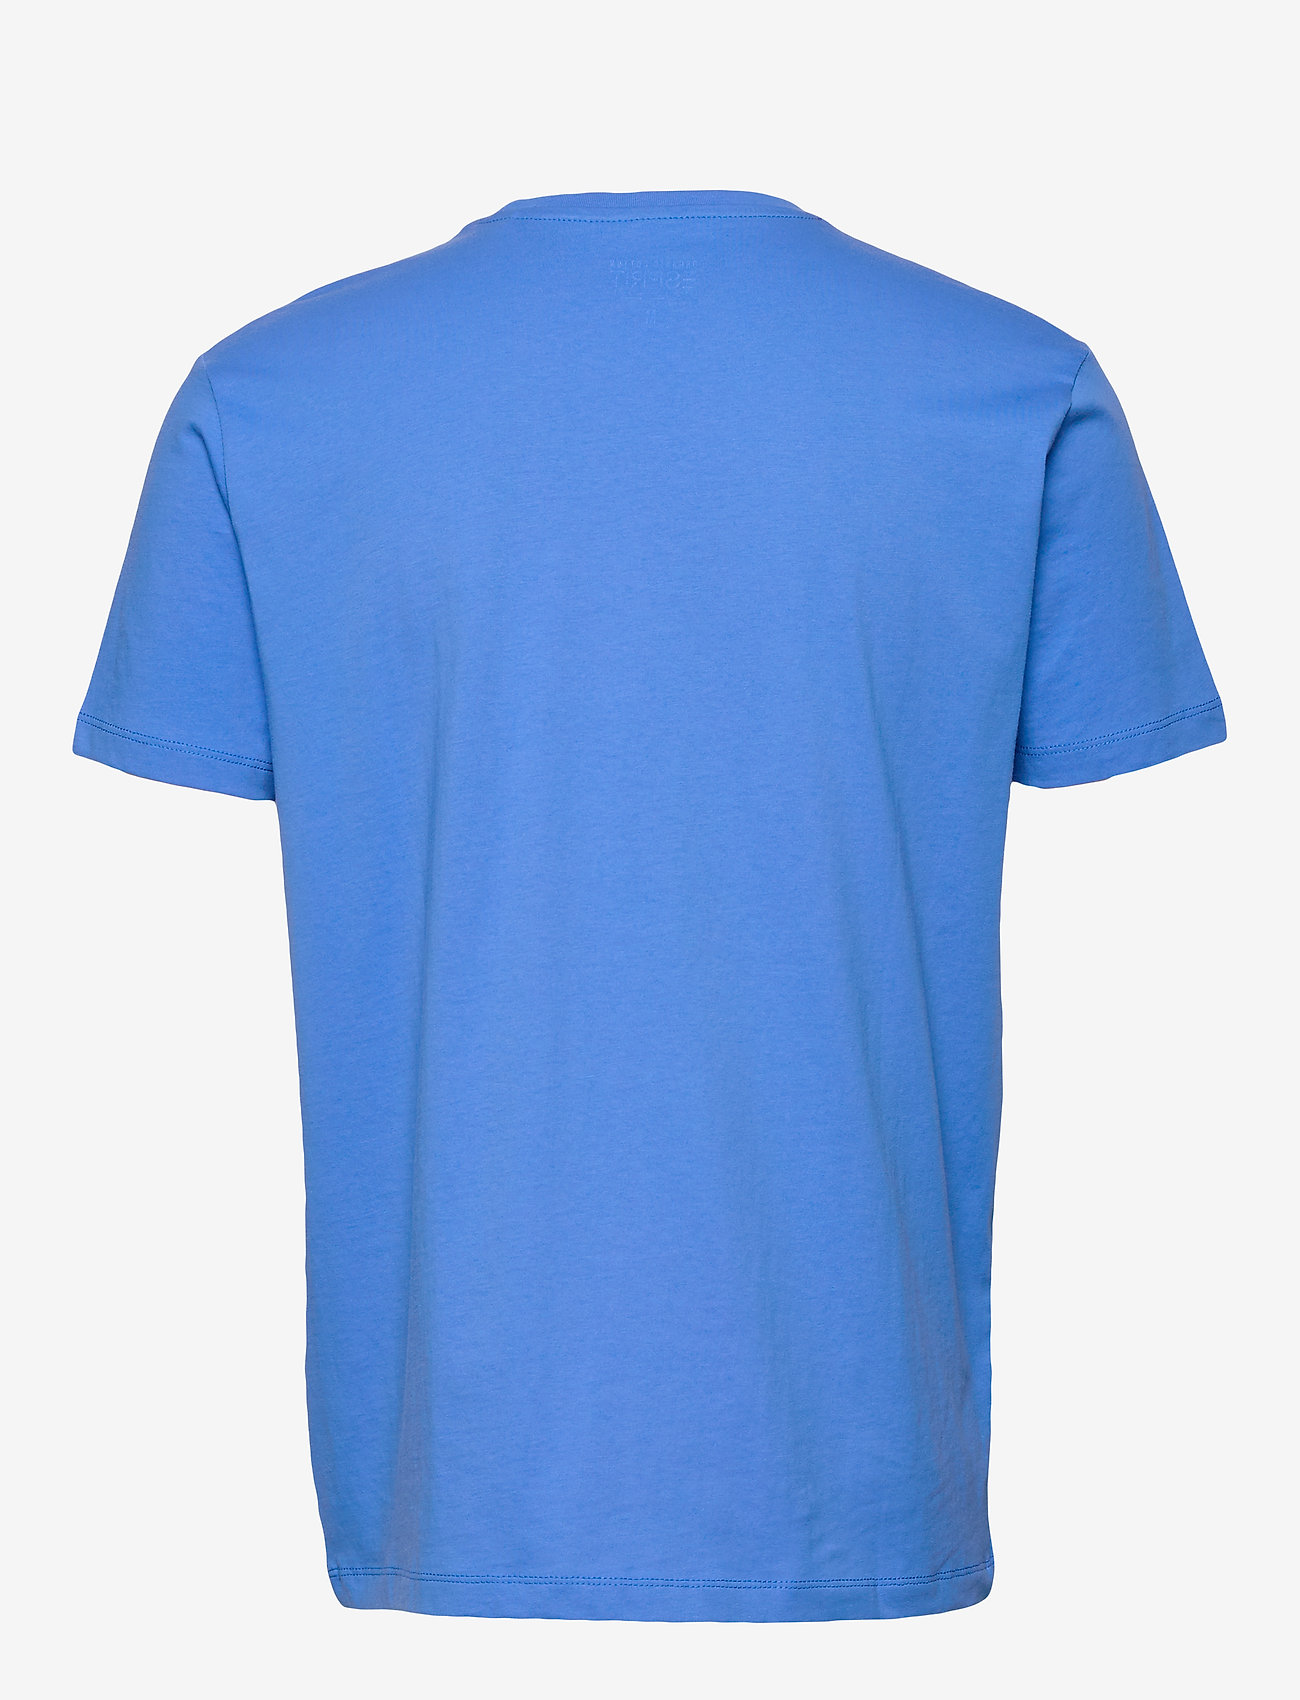 Esprit Casual - T-Shirts - short-sleeved t-shirts - bright blue - 1